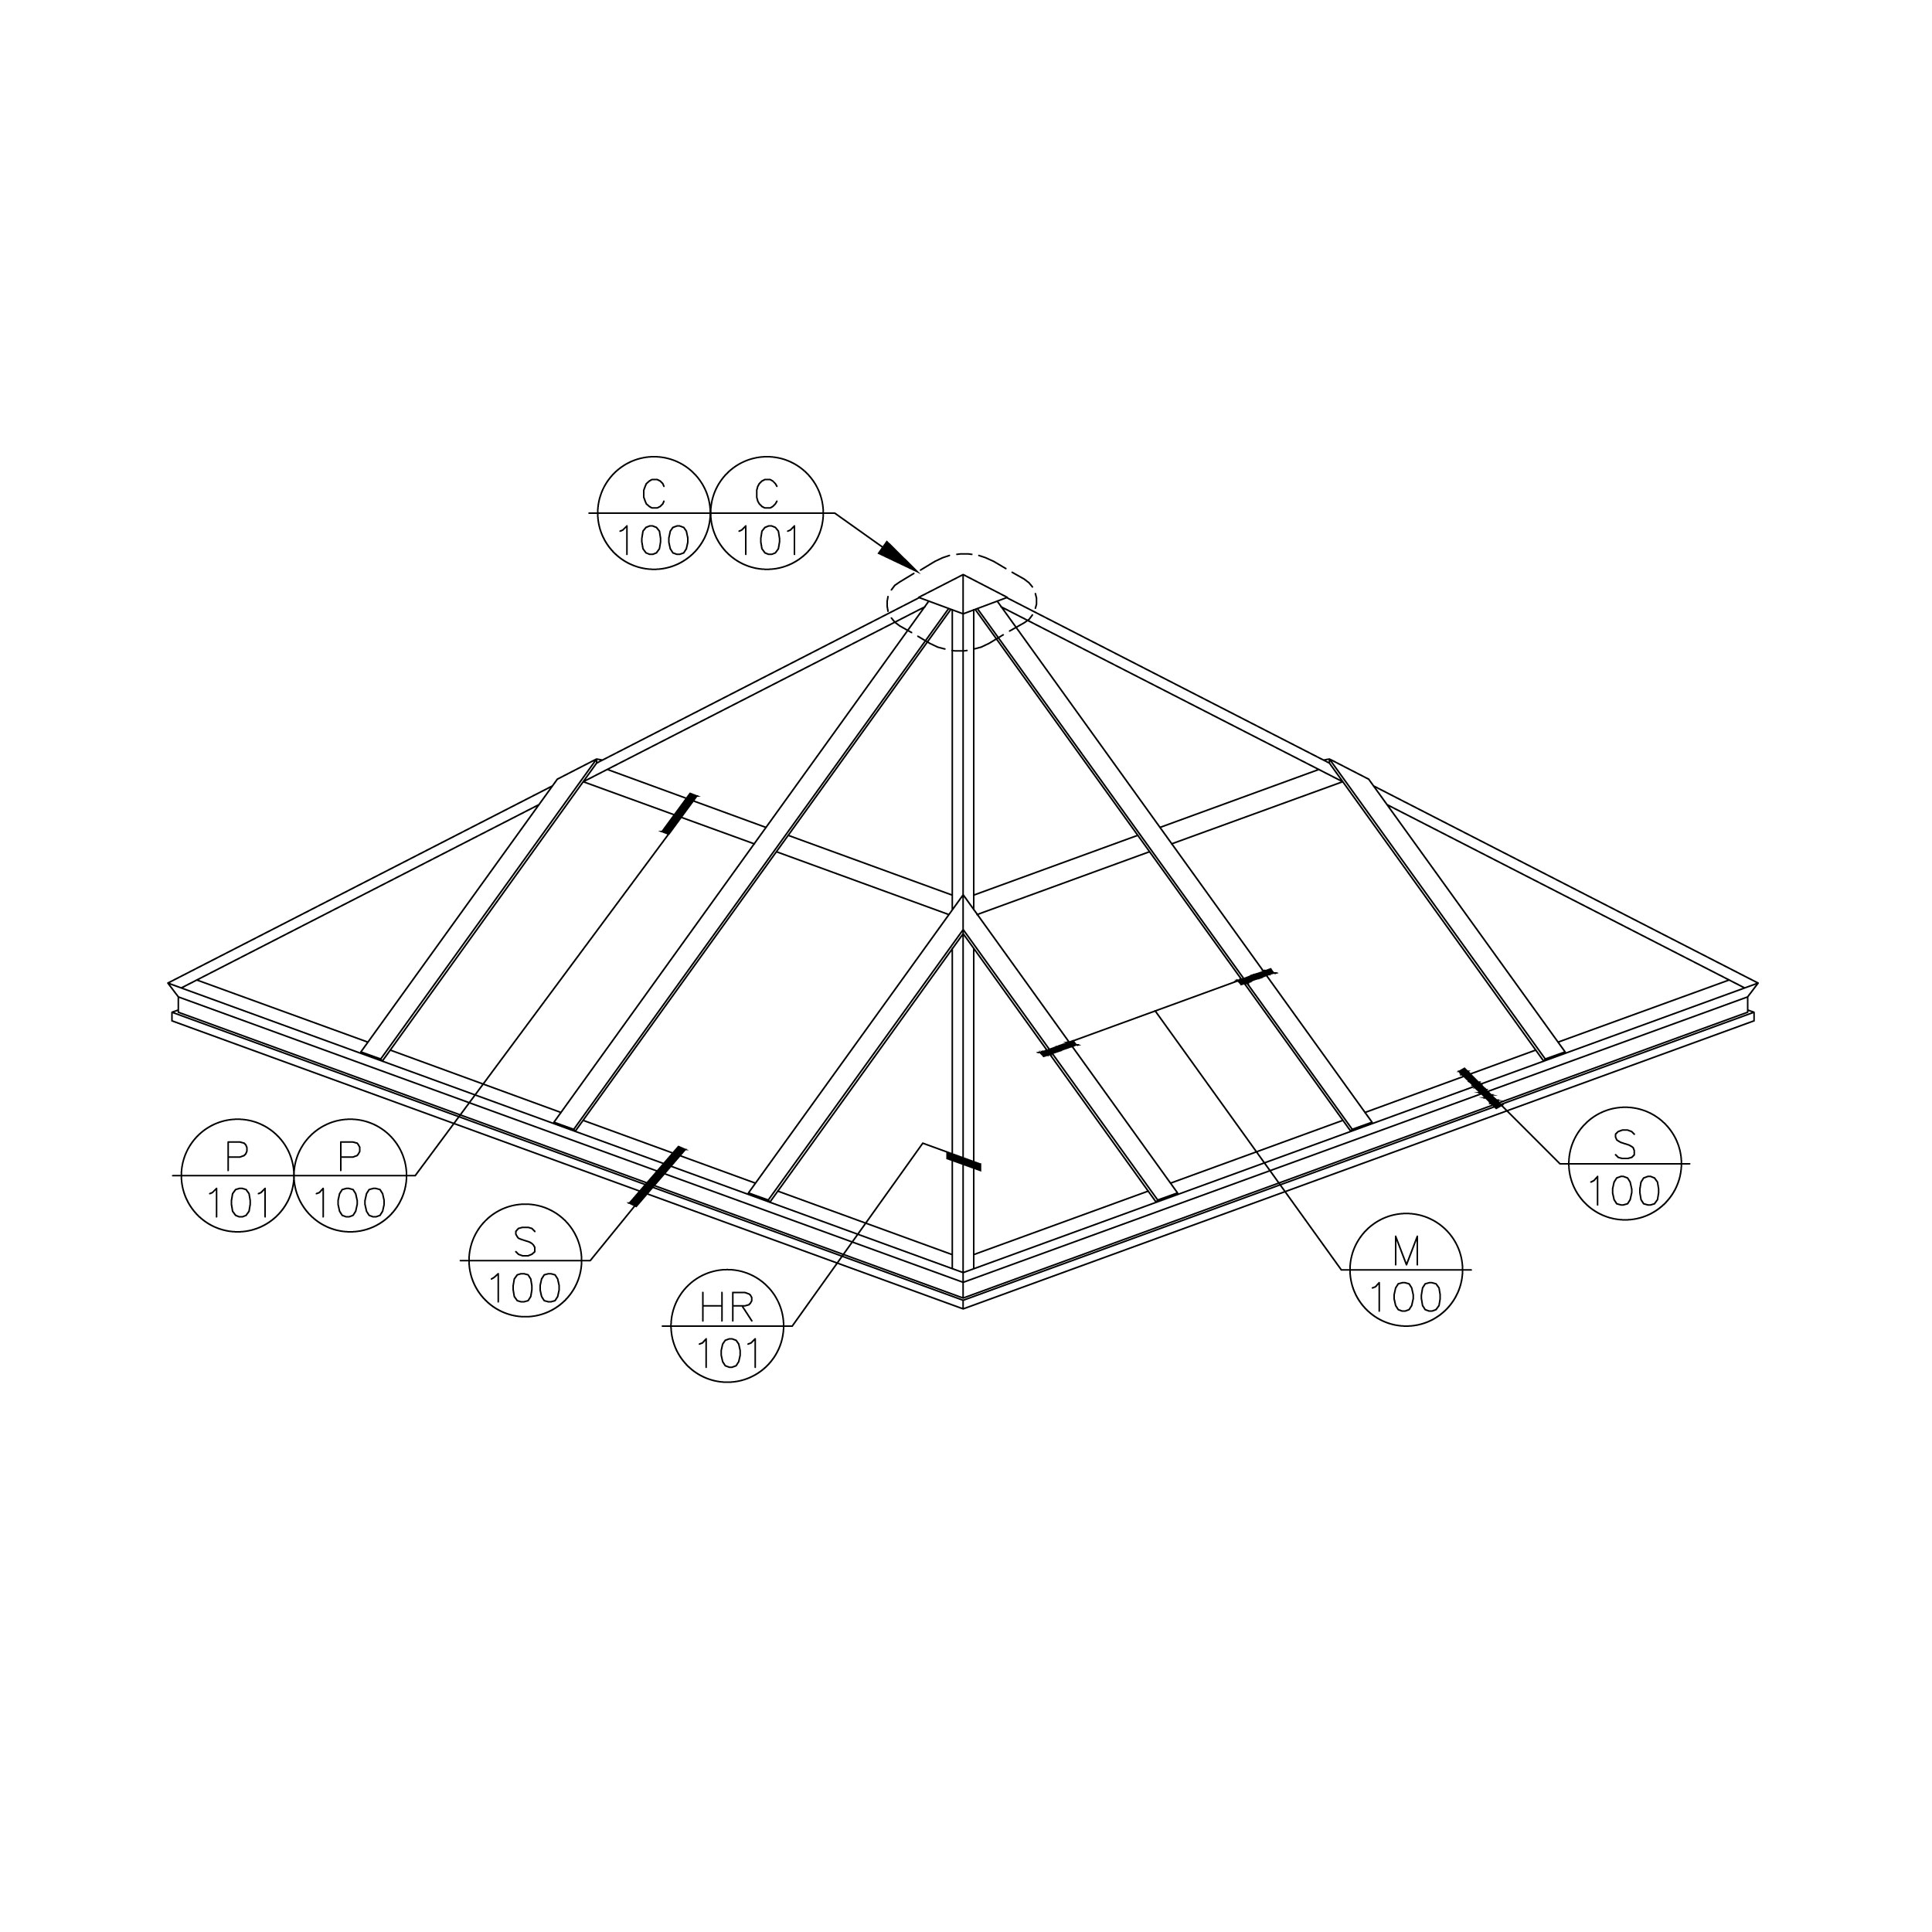 architectural-structural-pyramid-skylight-frame-isometric